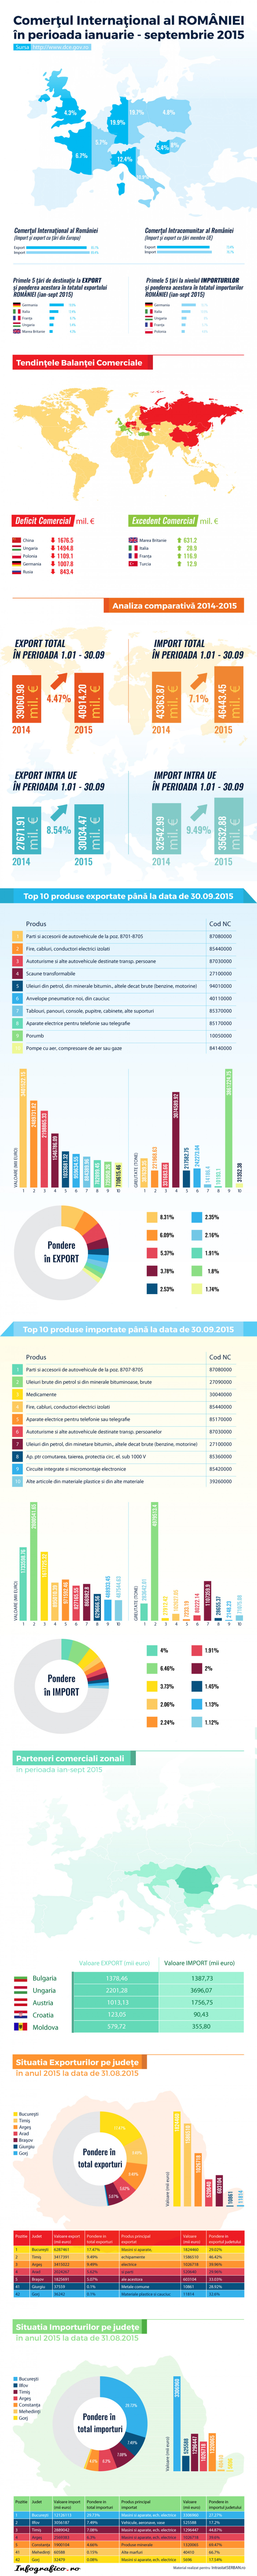 Romanian exports in 2015 Infographic